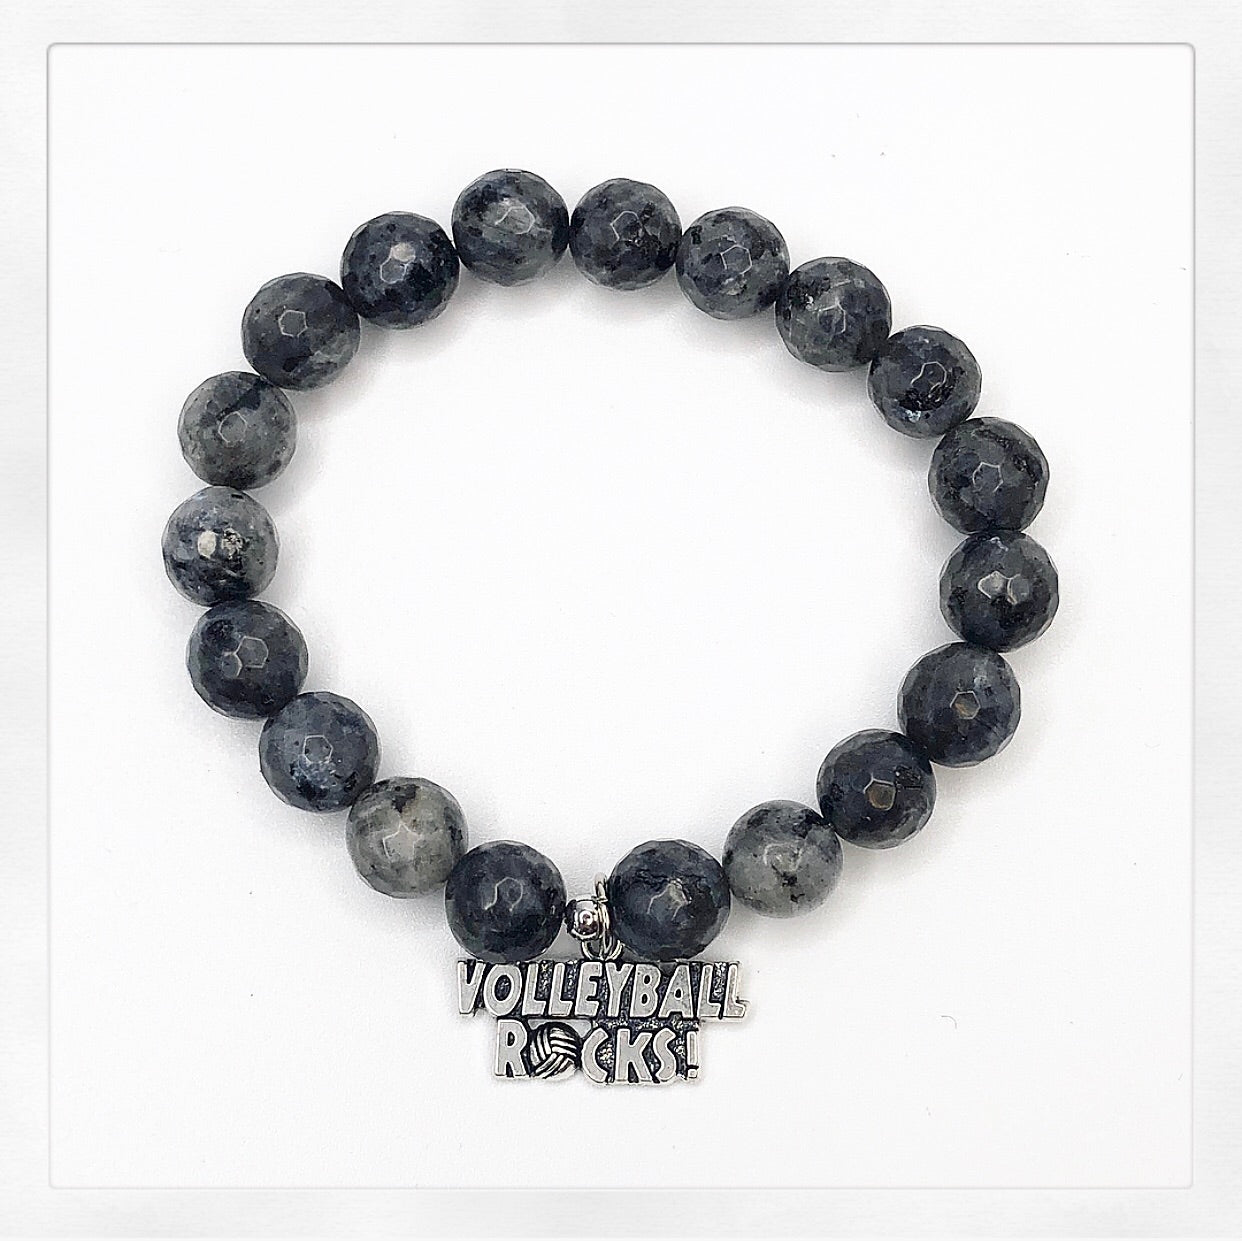 Volleyball Rocks Bracelet